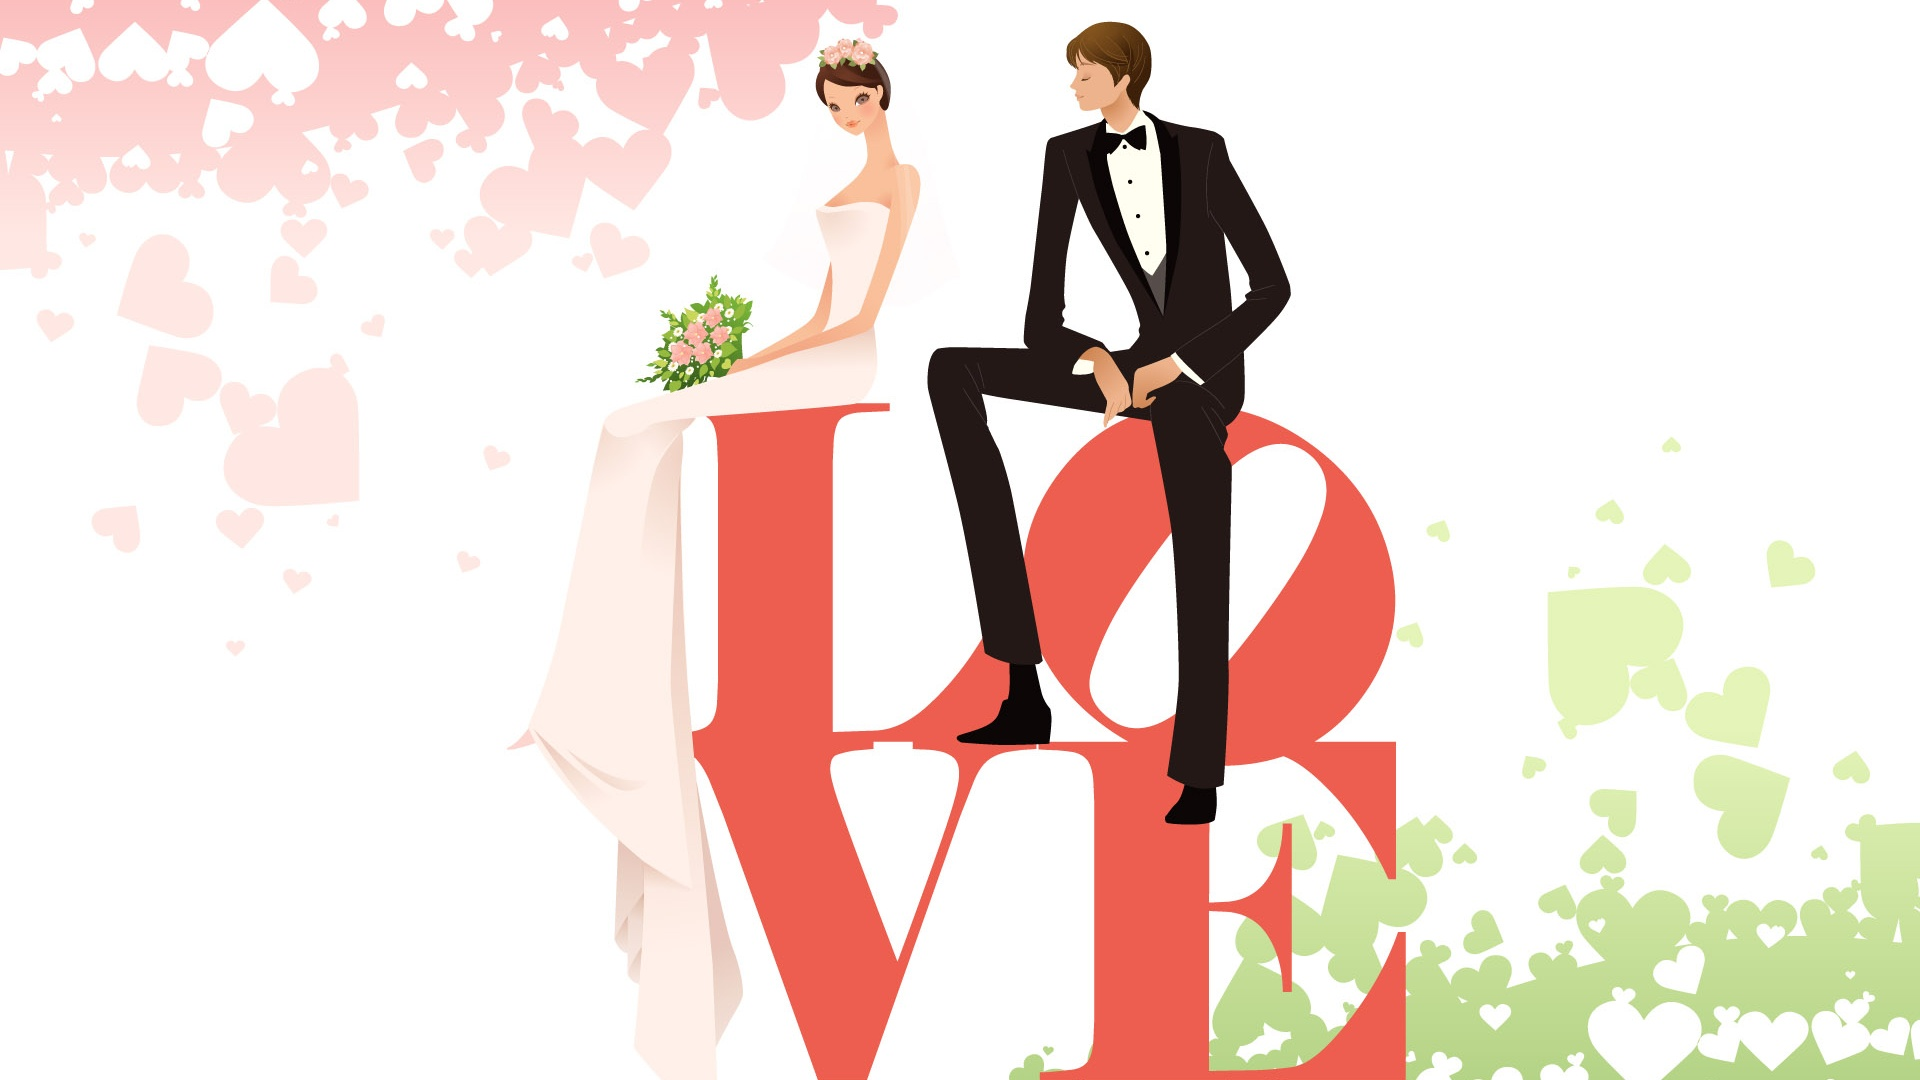 Wedding Wallpaper - Wedding Wallpaper